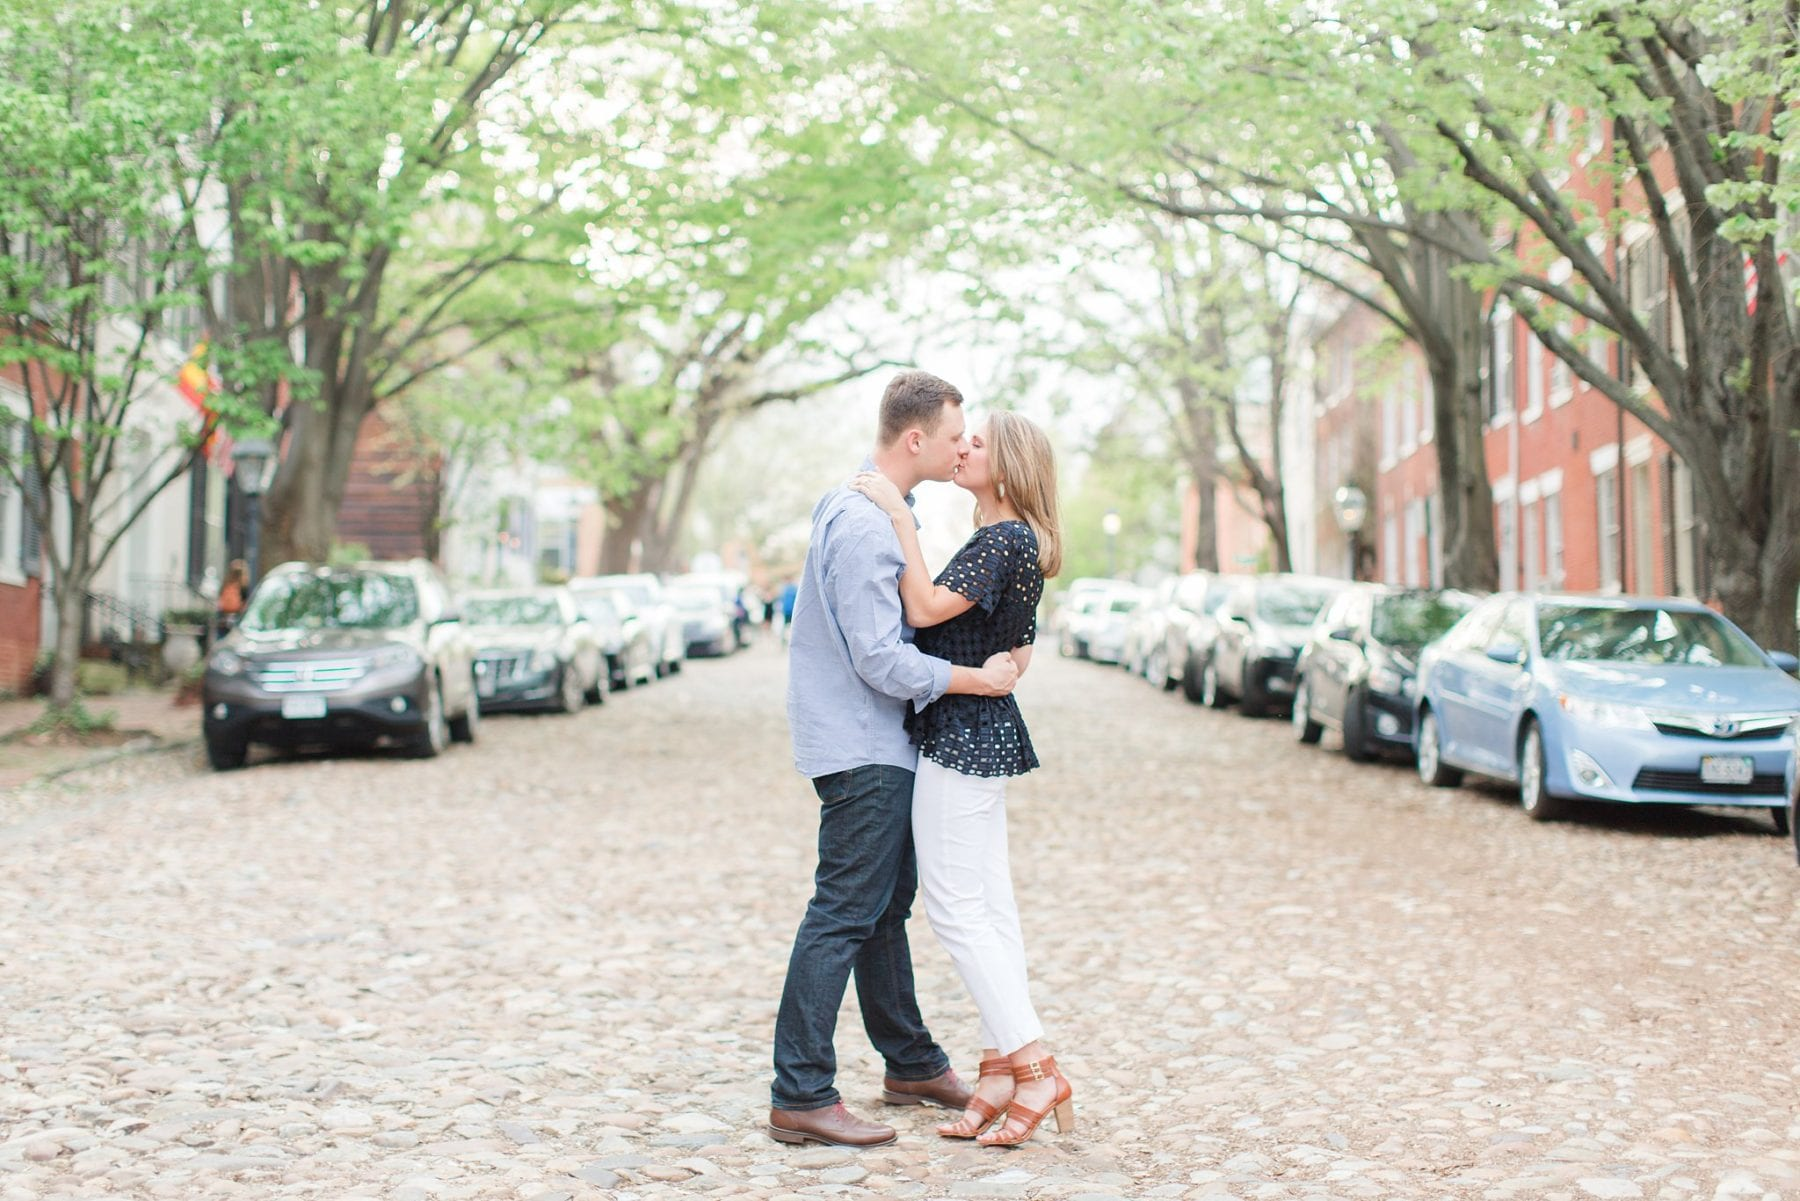 Springtime Old Town Alexandria Engagement Session Matt & Maxie Megan Kelsey Photography-227.jpg